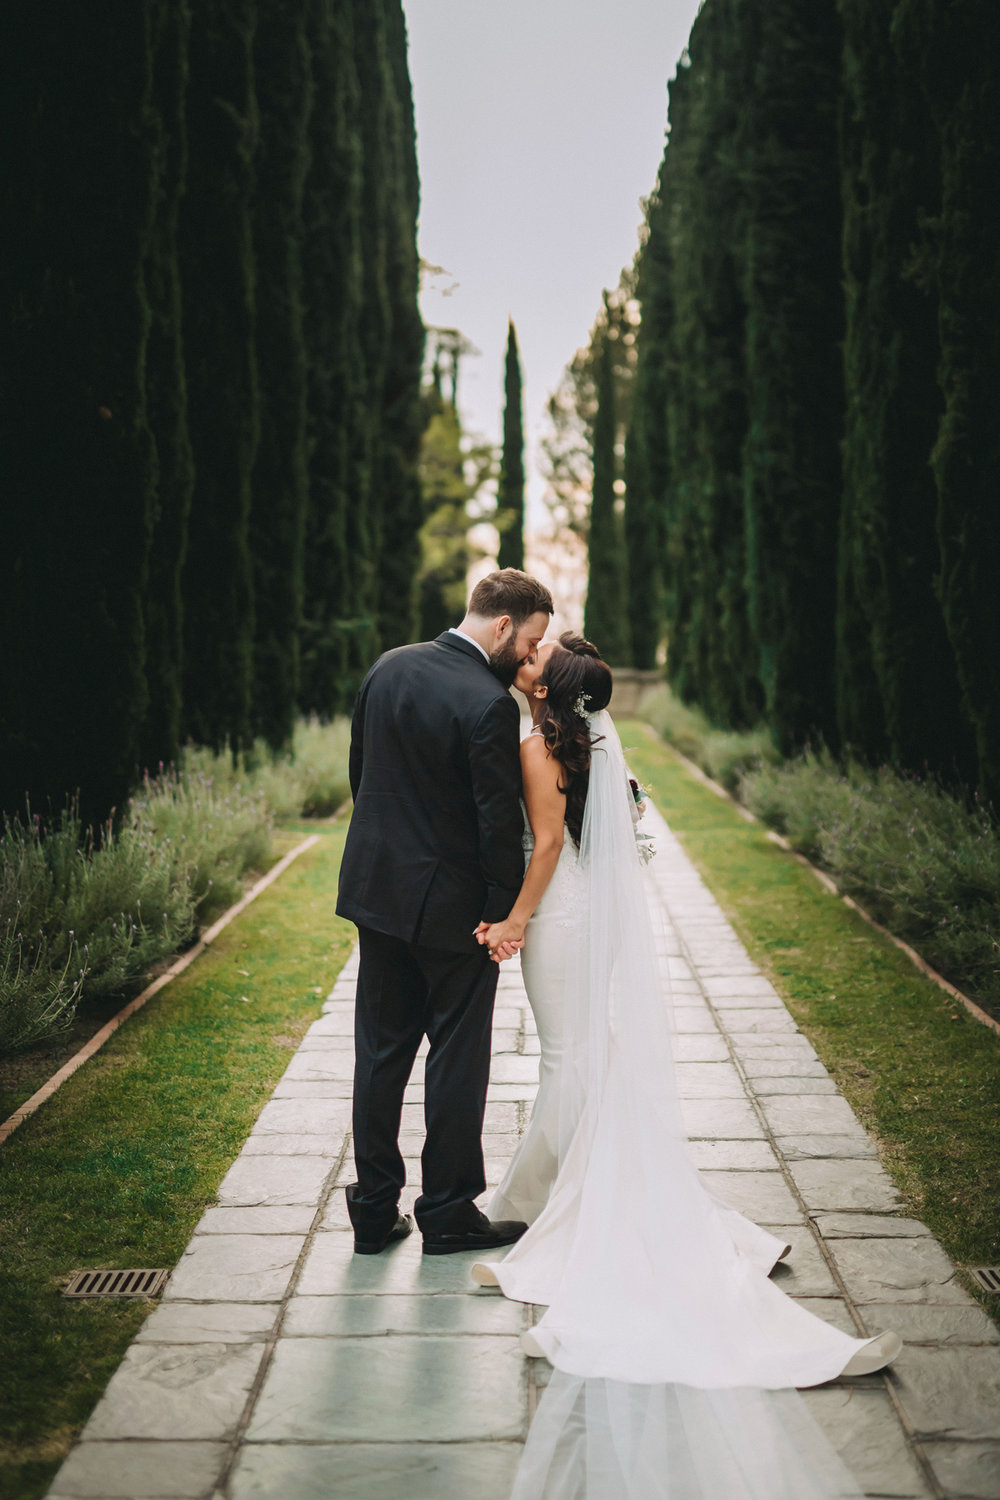 Breathtaking Contemporary Jewel Toned Fall Posh Wedding bride and groom in the gardens.jpg